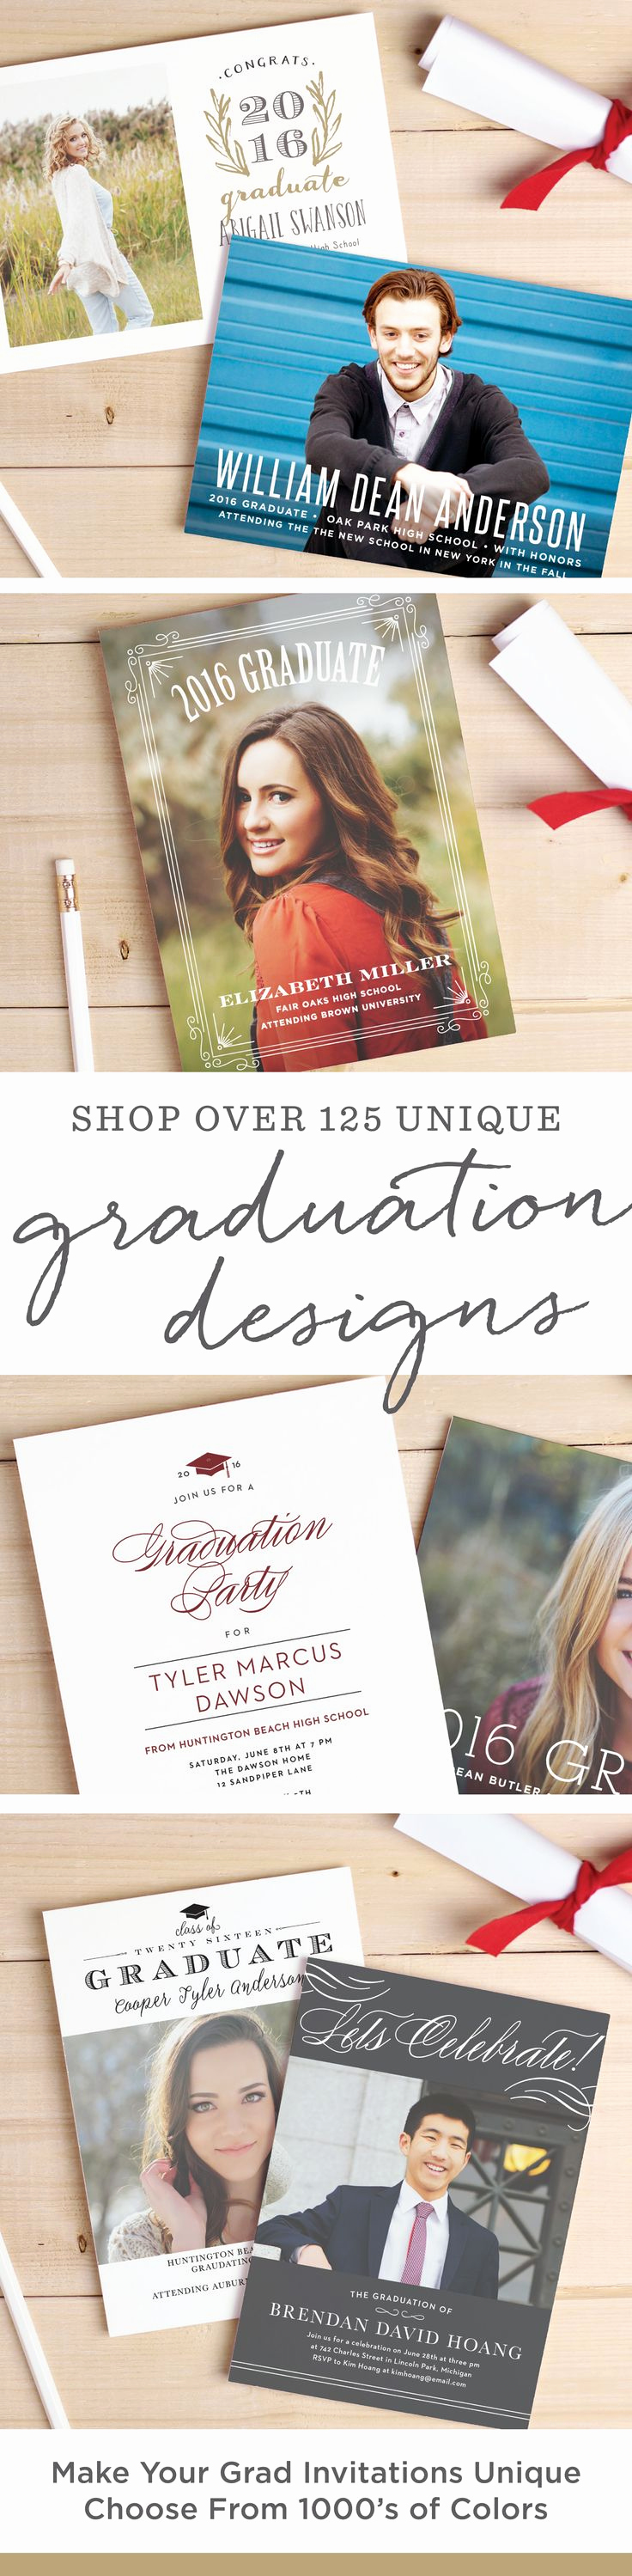 High School Graduation Invitation Elegant Best 25 High School Graduation Invitations Ideas On